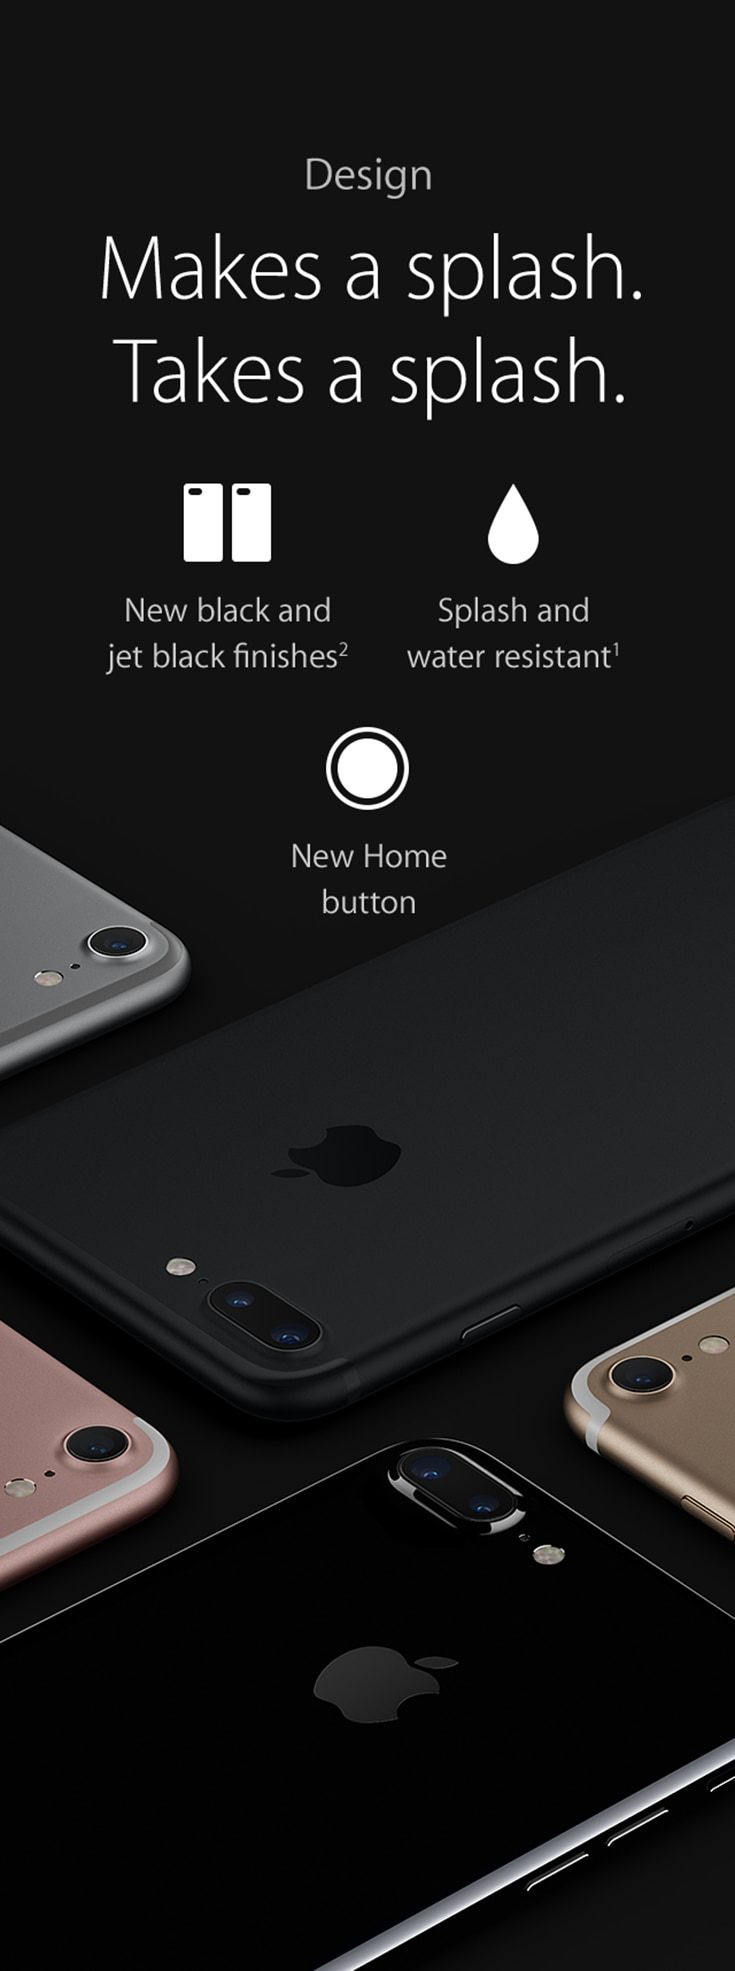 Makes a splash. Takes a splash. New black and jet black finished. Splash and water resistant. New home button.